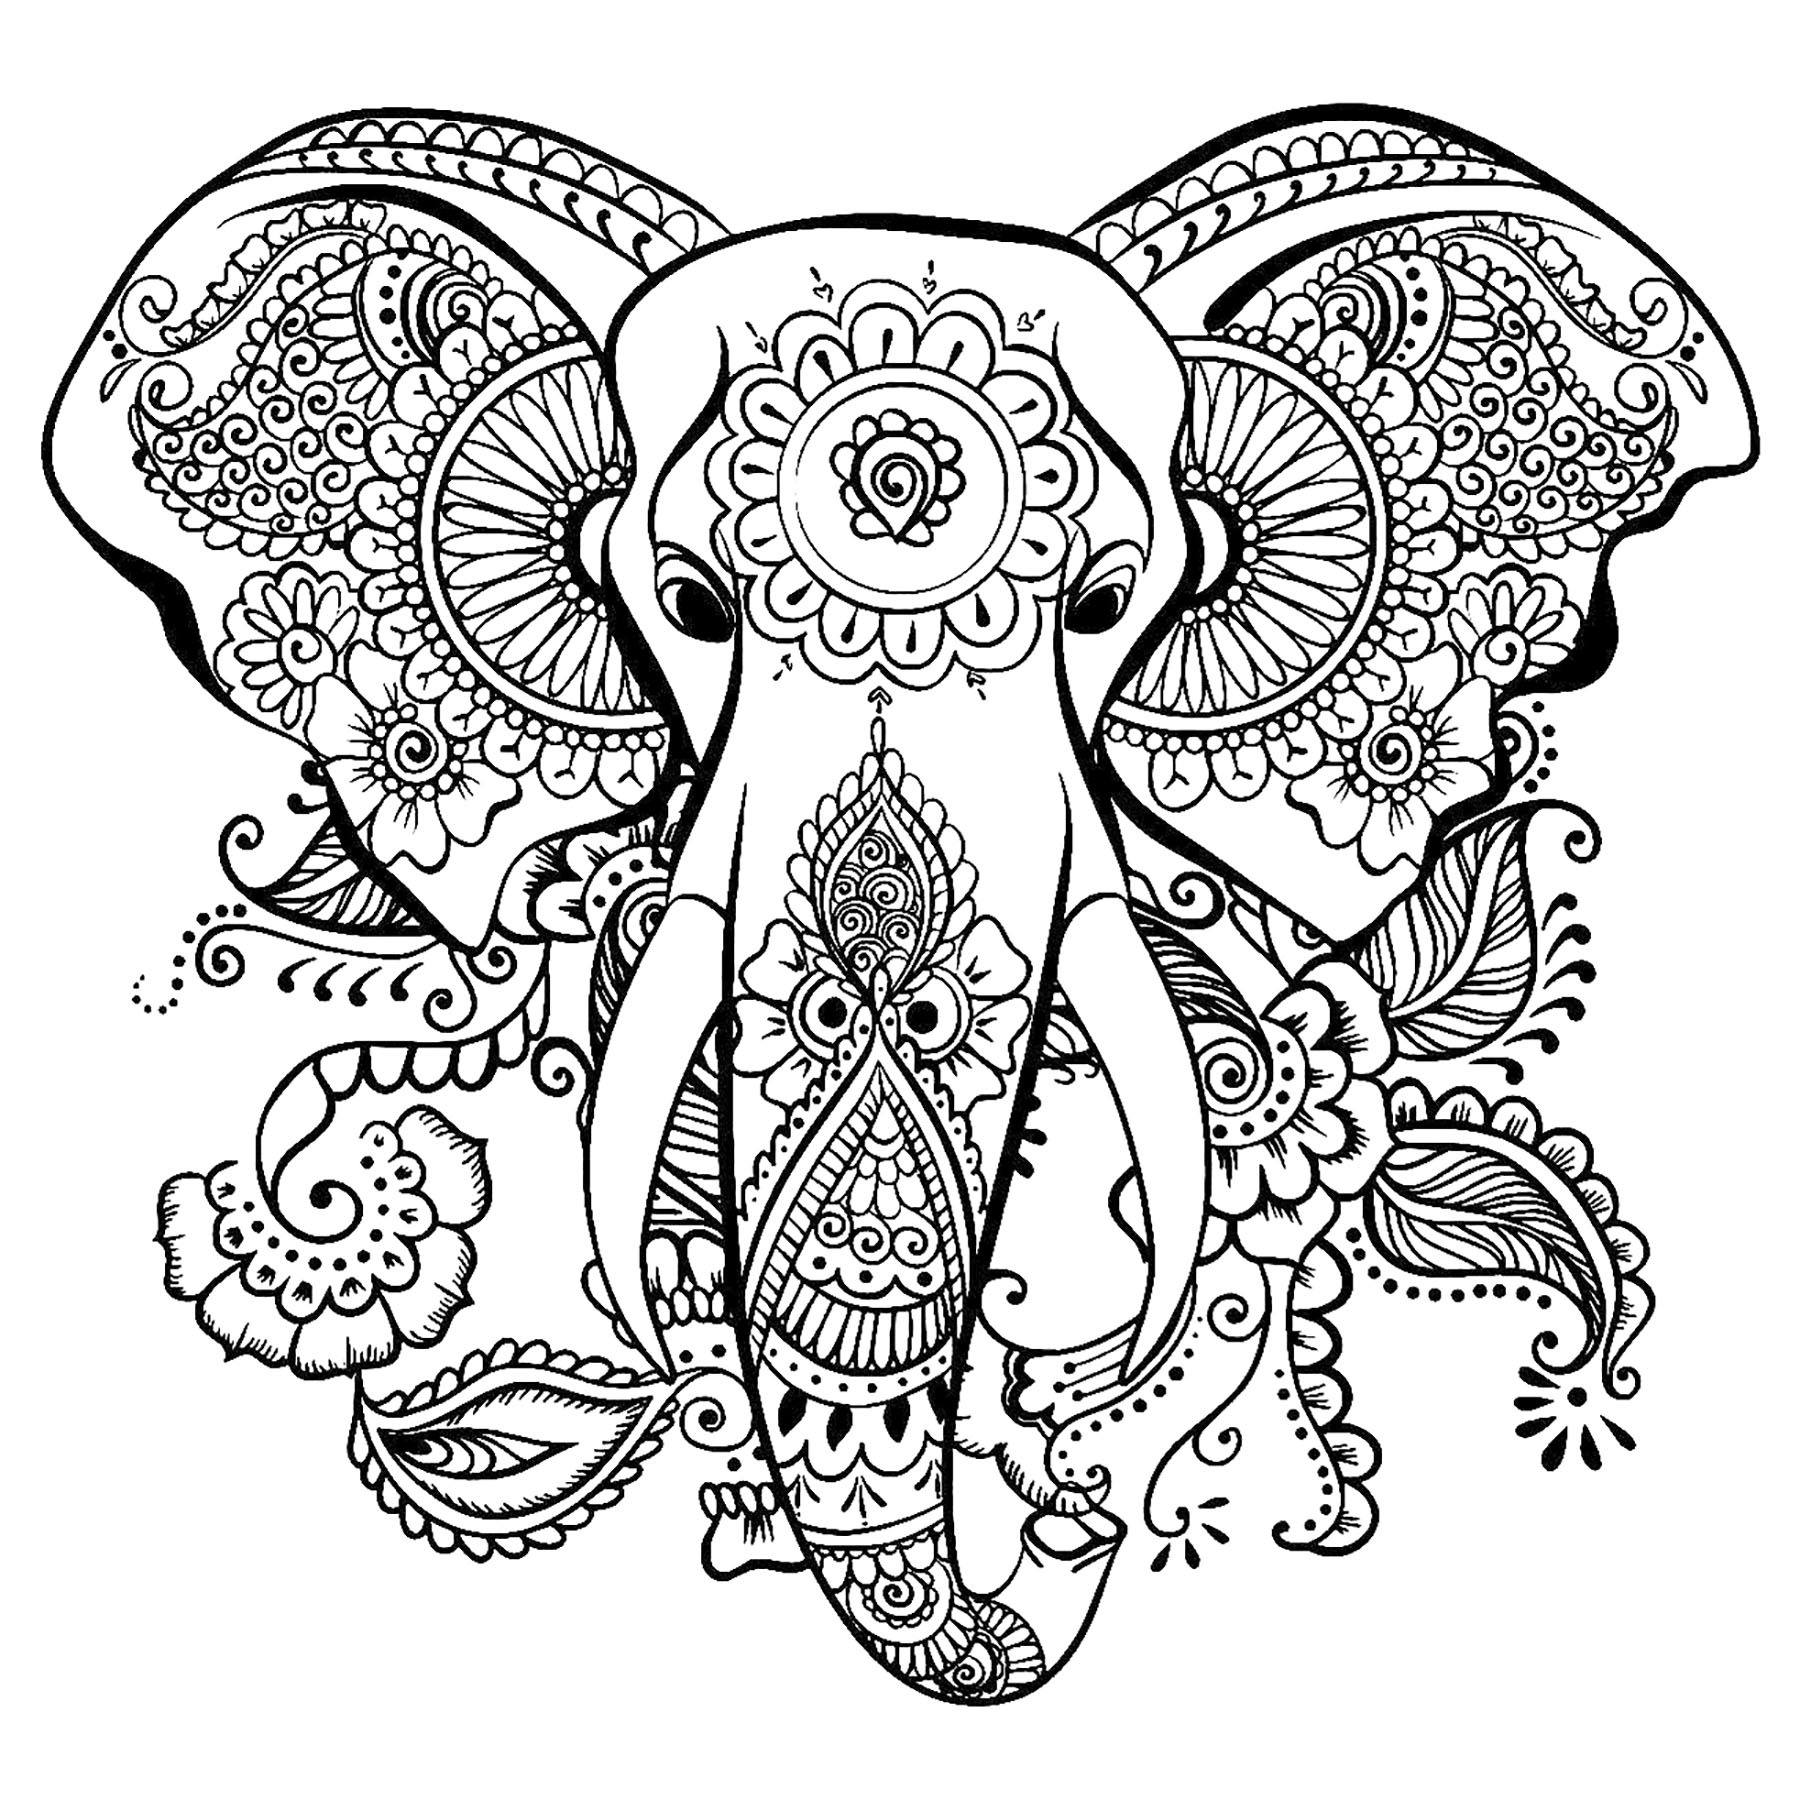 elephant images for colouring elegant drawing of an elephant elephants adult coloring images for colouring elephant